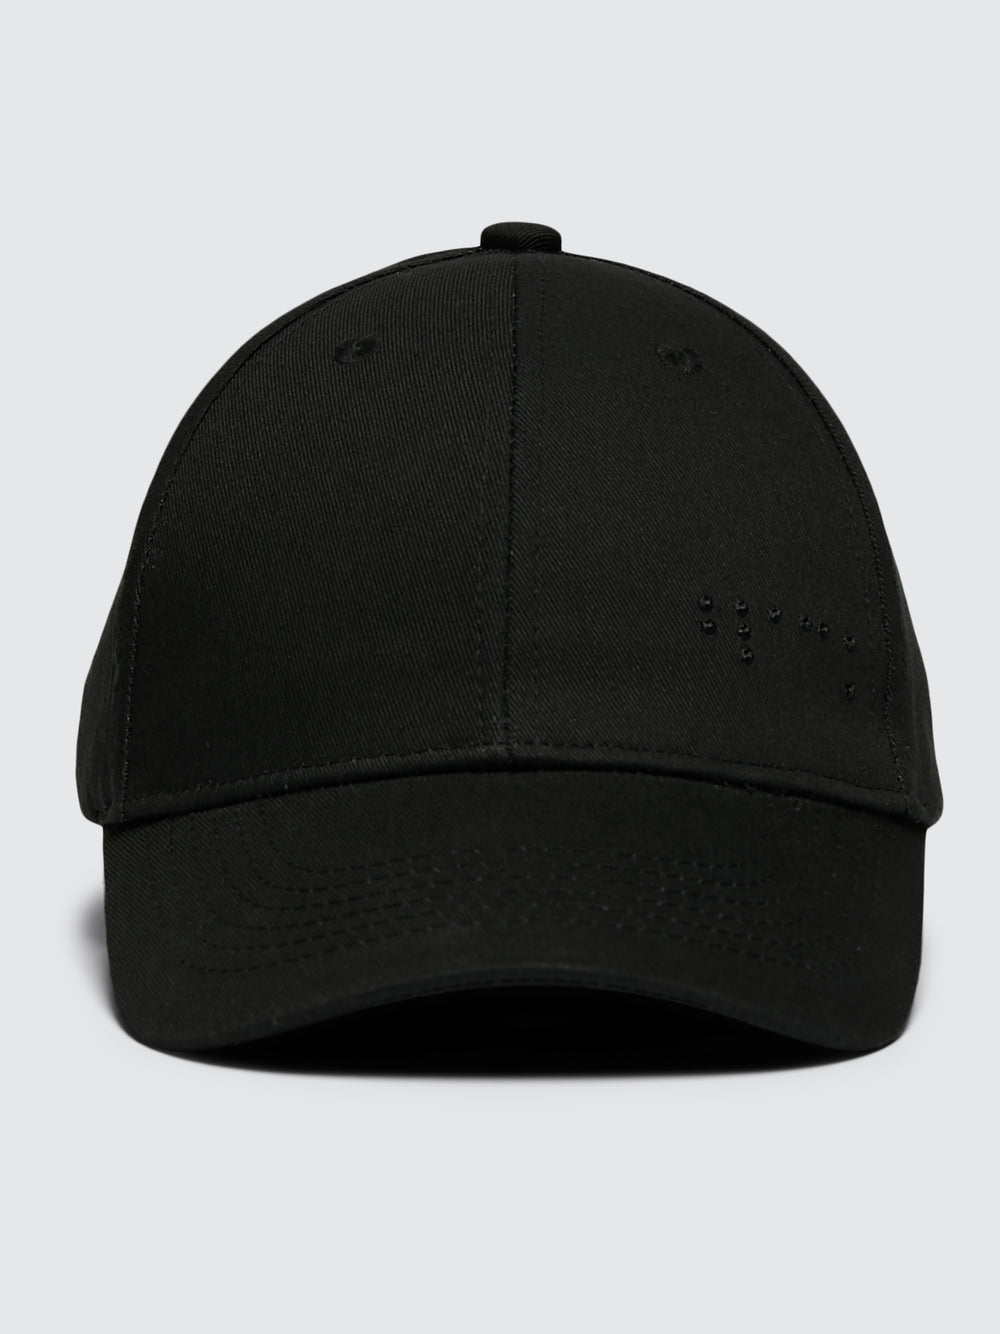 Two Blind Brothers - Gift 2BB Baseball Cap 2BB-Baseball-Cap